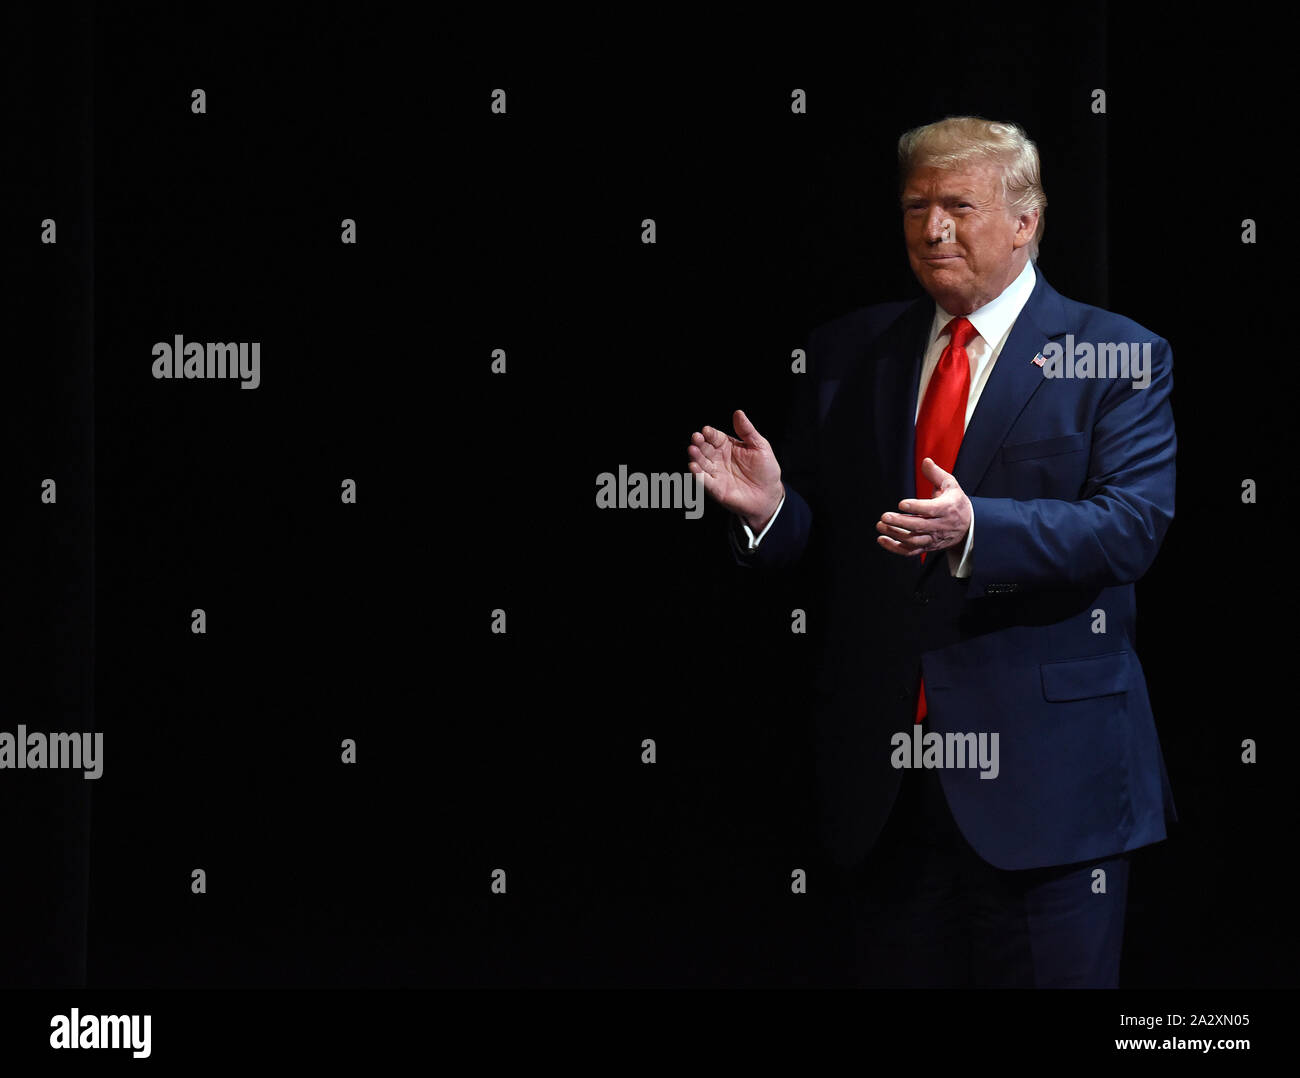 The Villages, United States. 03rd Oct, 2019. U.S. President Donald Trump looks claps his hands after giving remarks on his administration's health policy and signing an executive order regarding Medicare at the Sharon L. Morse Performing Arts Center on October 3, 2019 in The Villages, Florida. Credit: Paul Hennessy/Alamy Live News Stock Photo